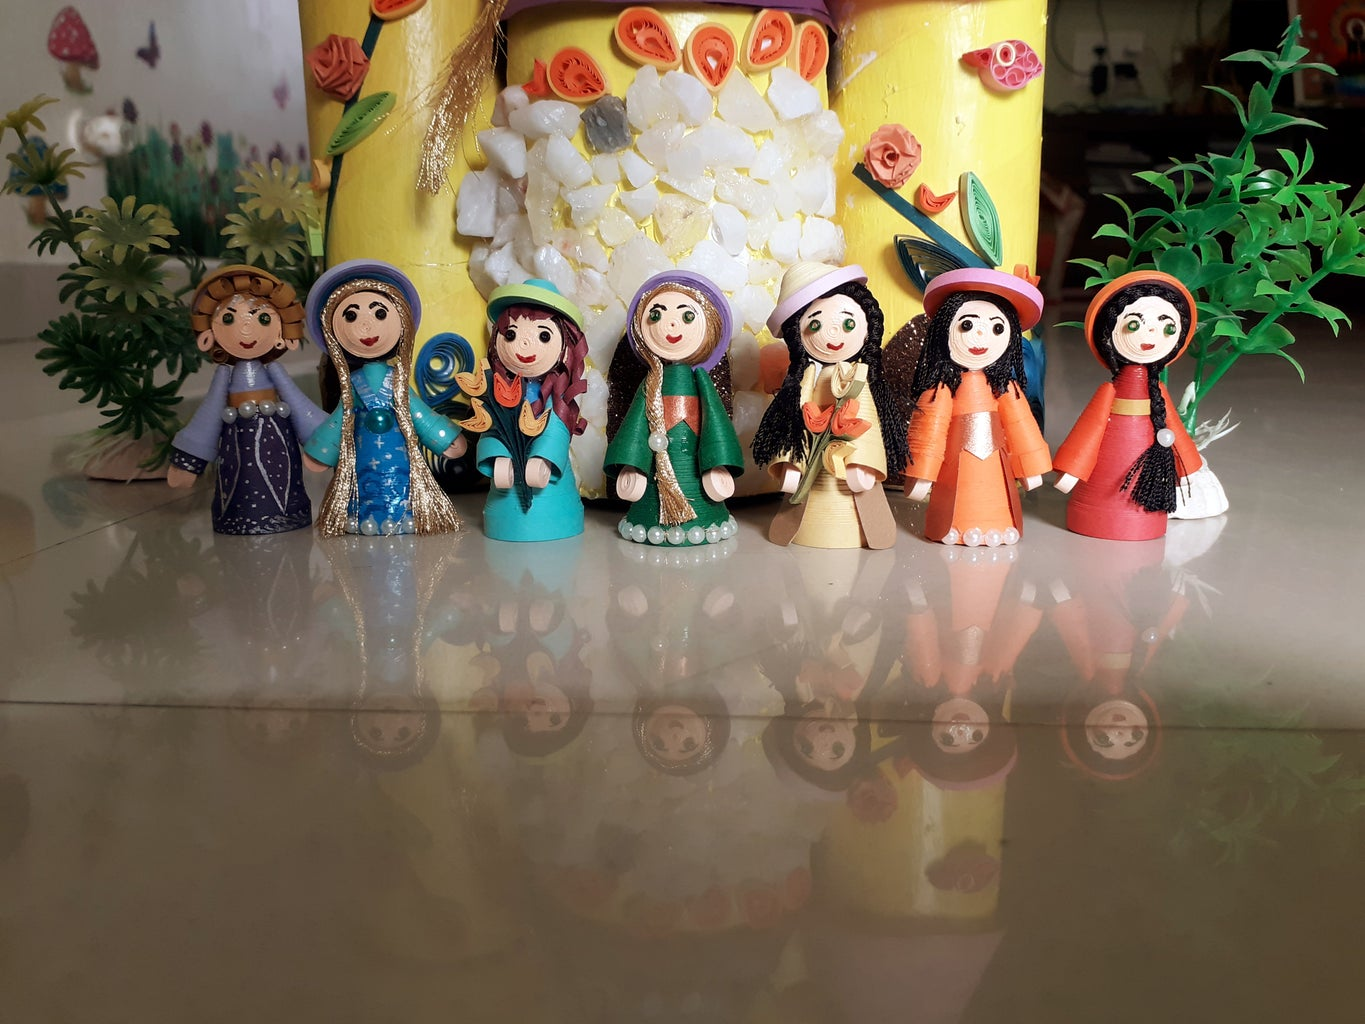 Arrangment of Dolls and Castle